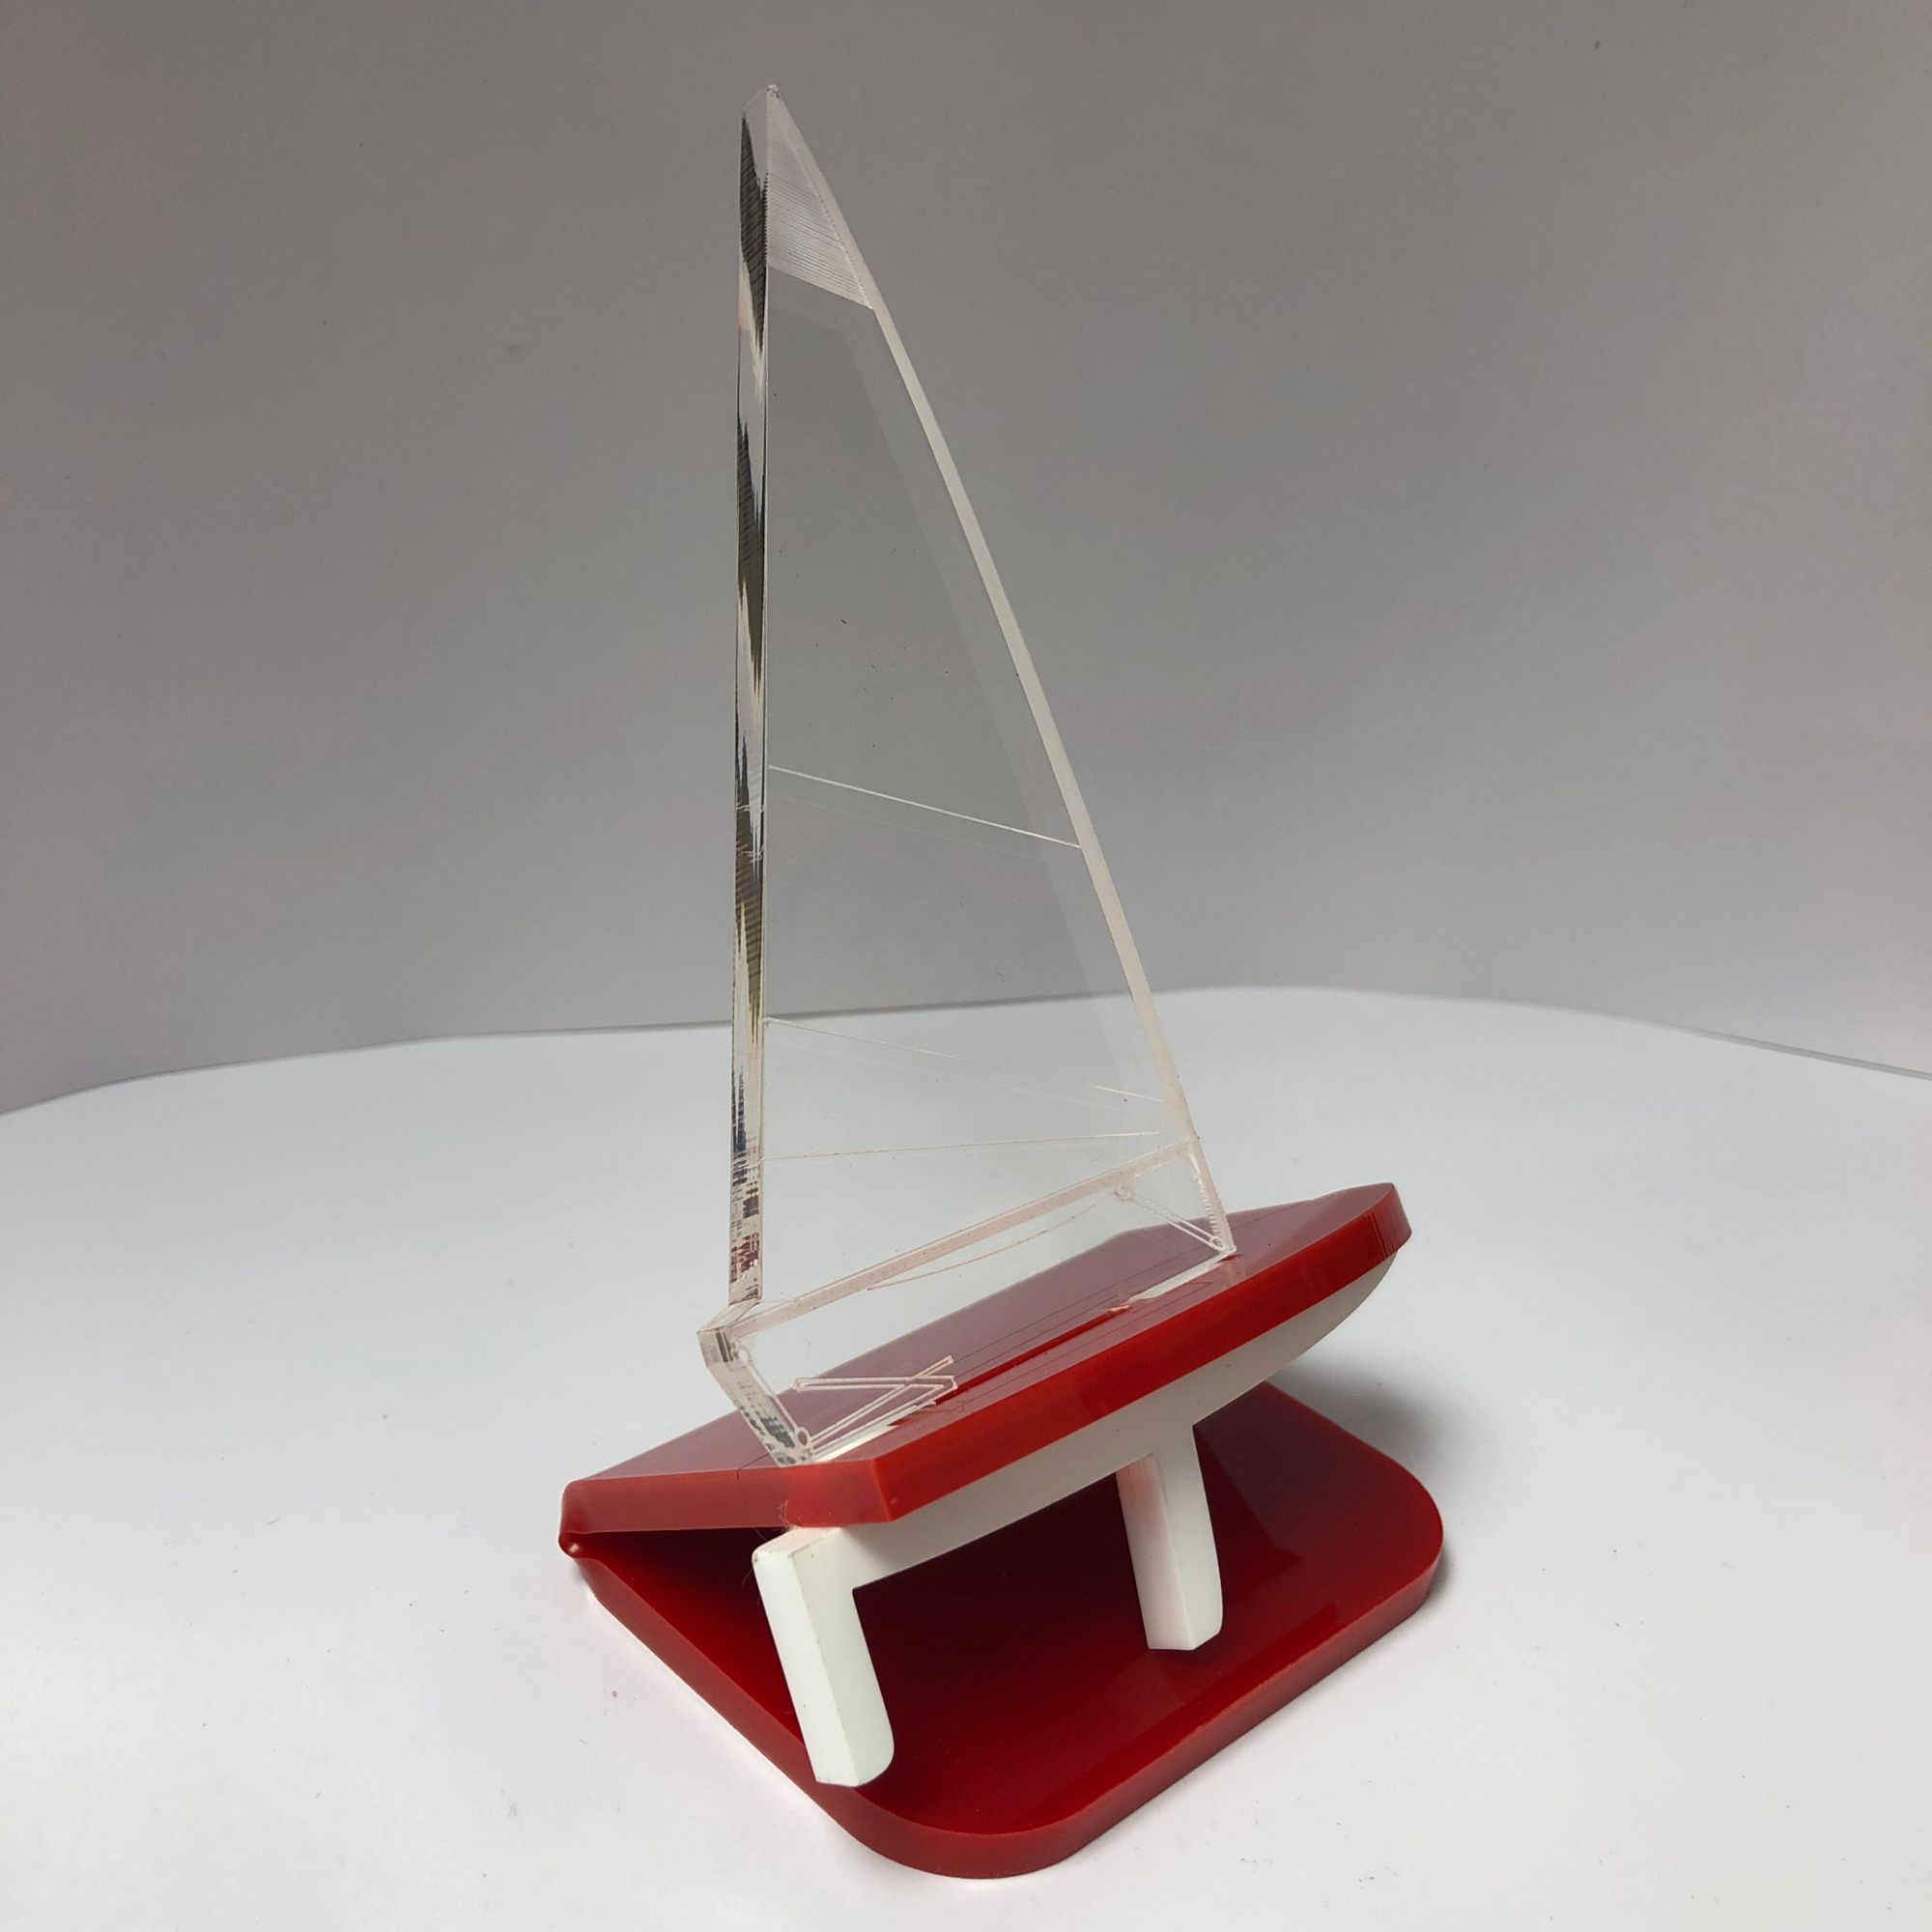 Topper_dinghy_red_&_white.jpg